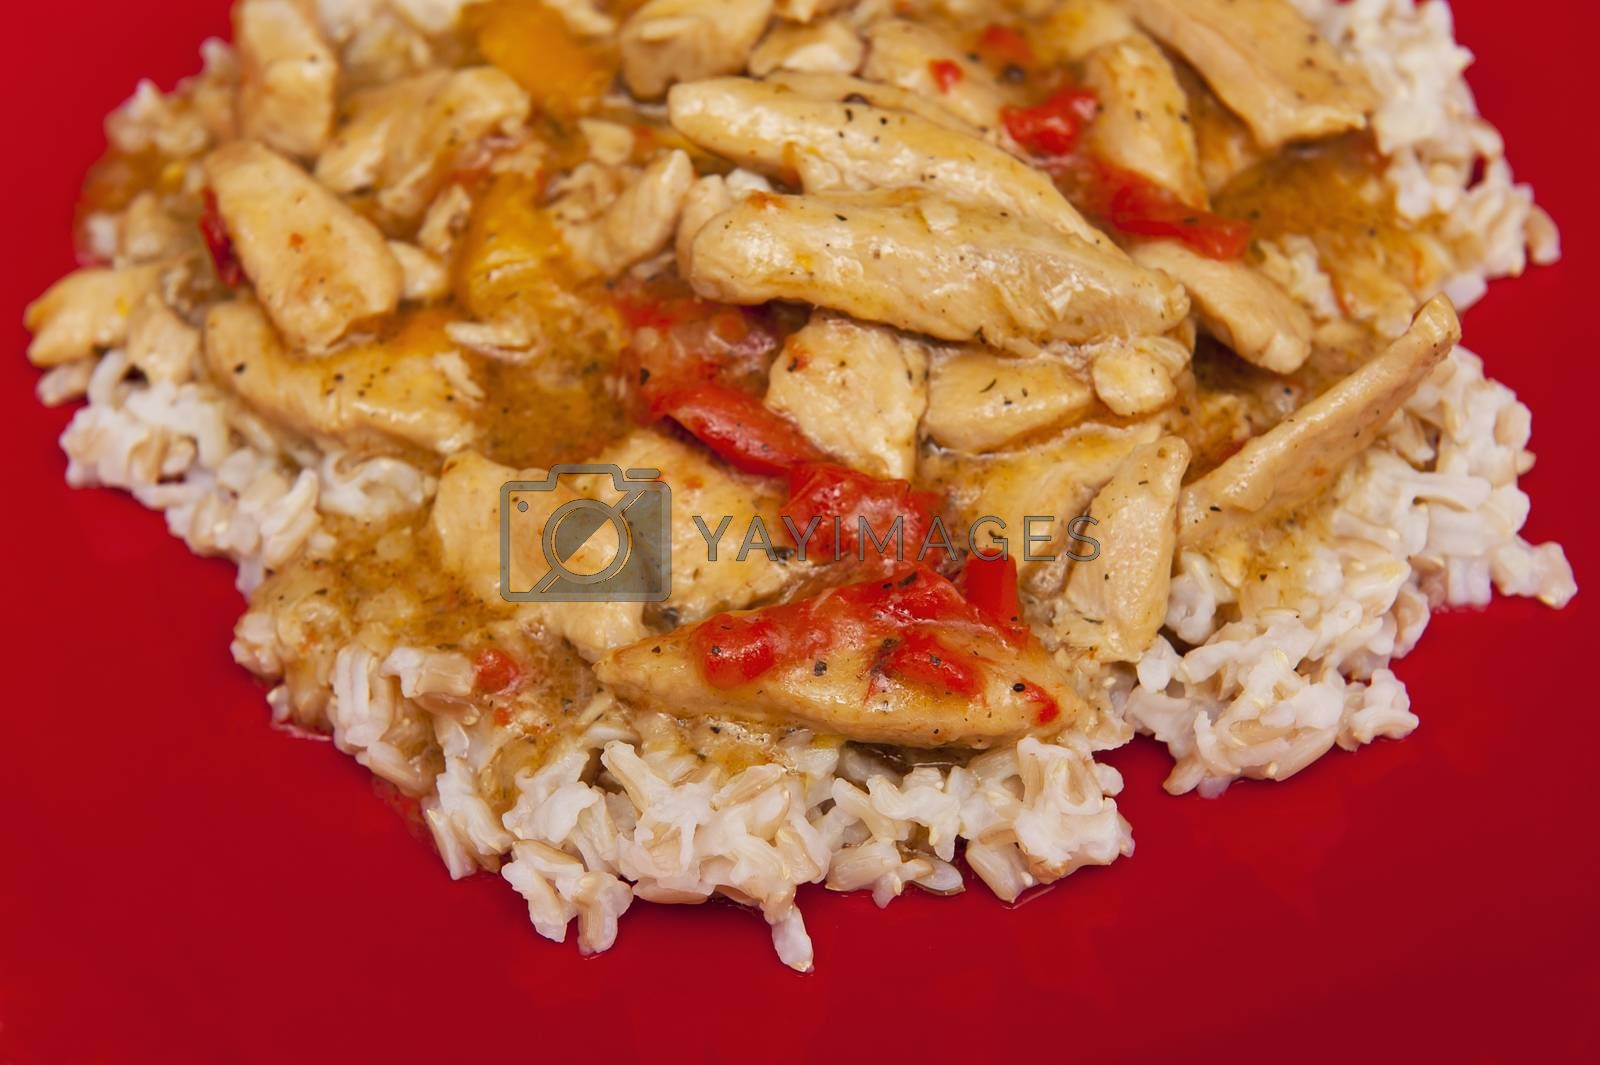 Meat with rice on the red plate